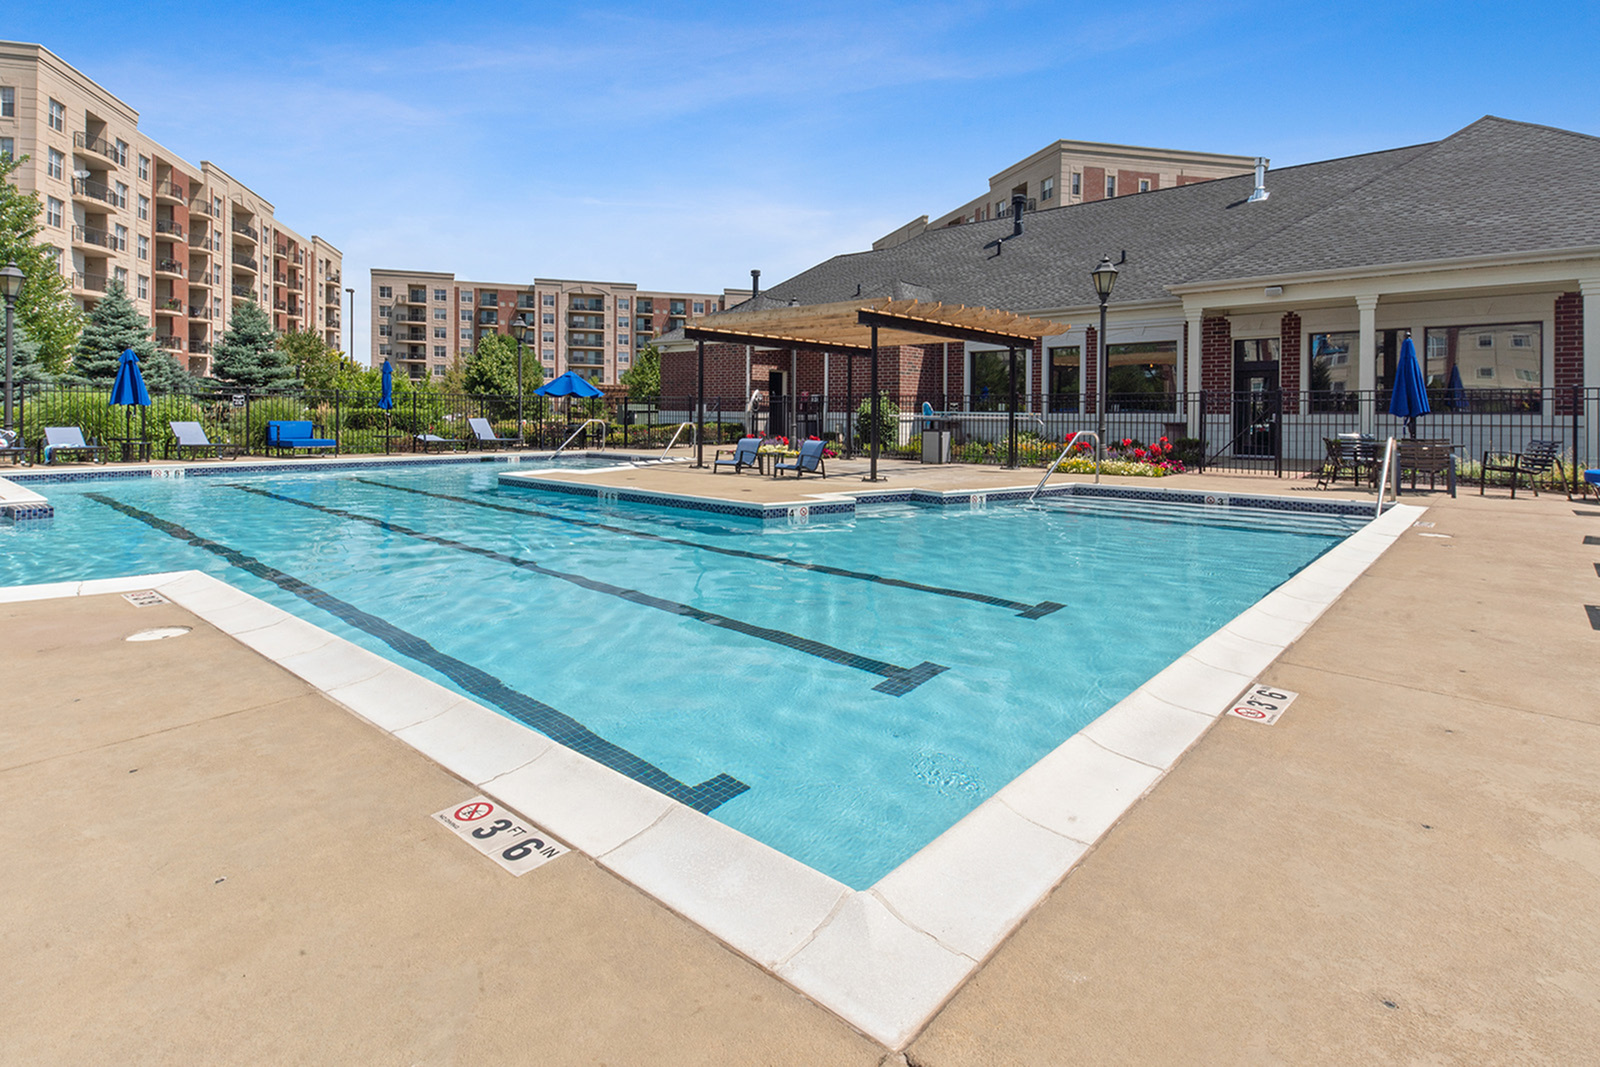 Image of Pool for ReNew Downers Grove